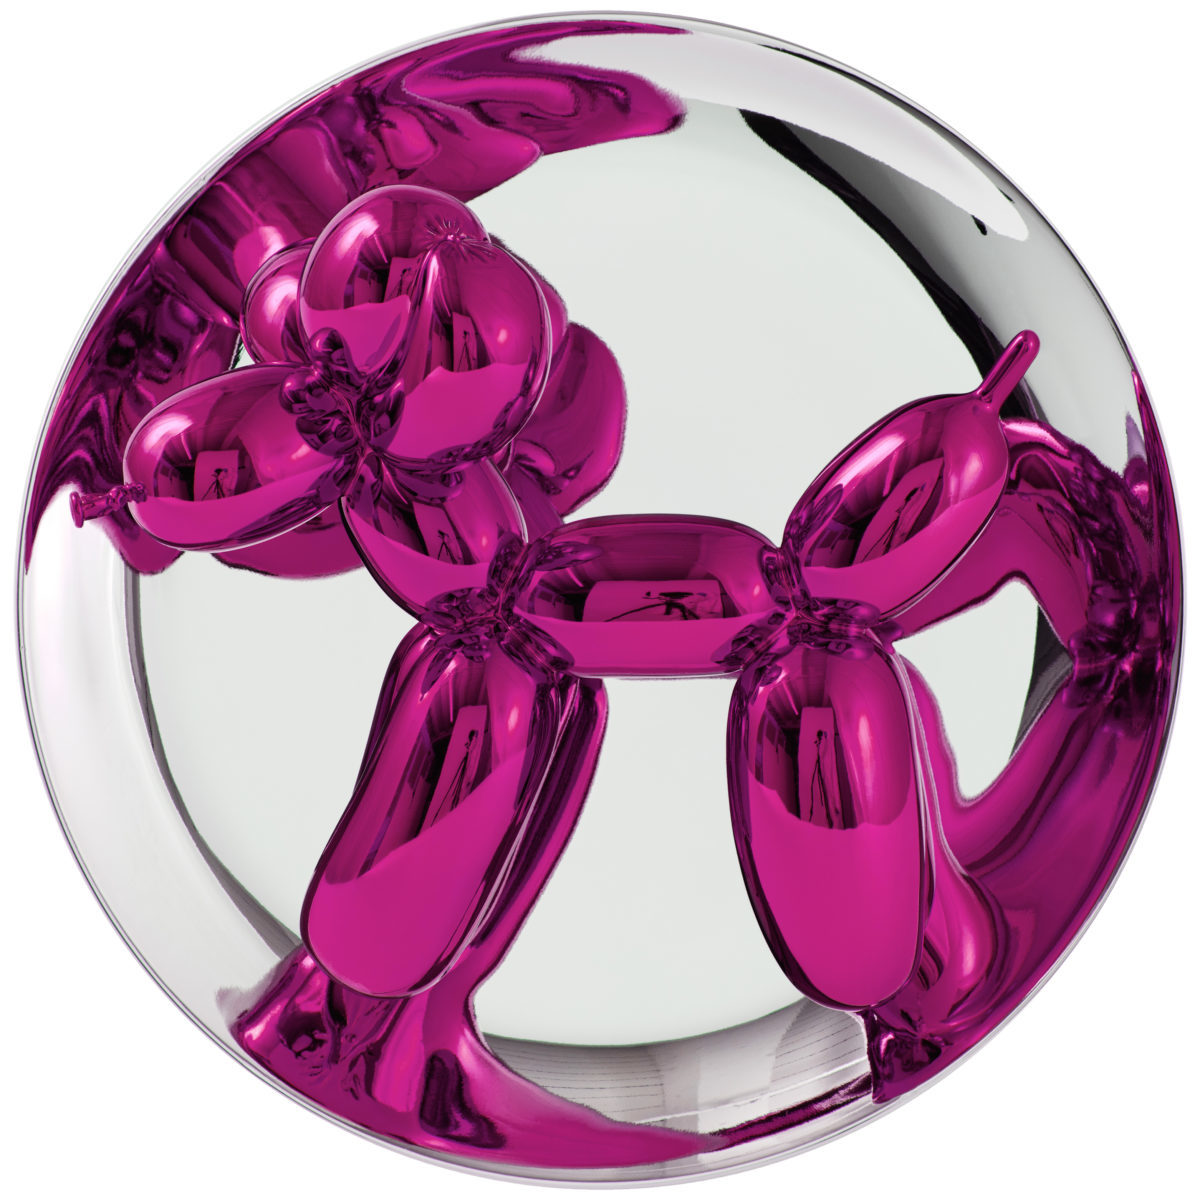 KOONS_Balloon dogs plate magenta copyright © Jeff Koons